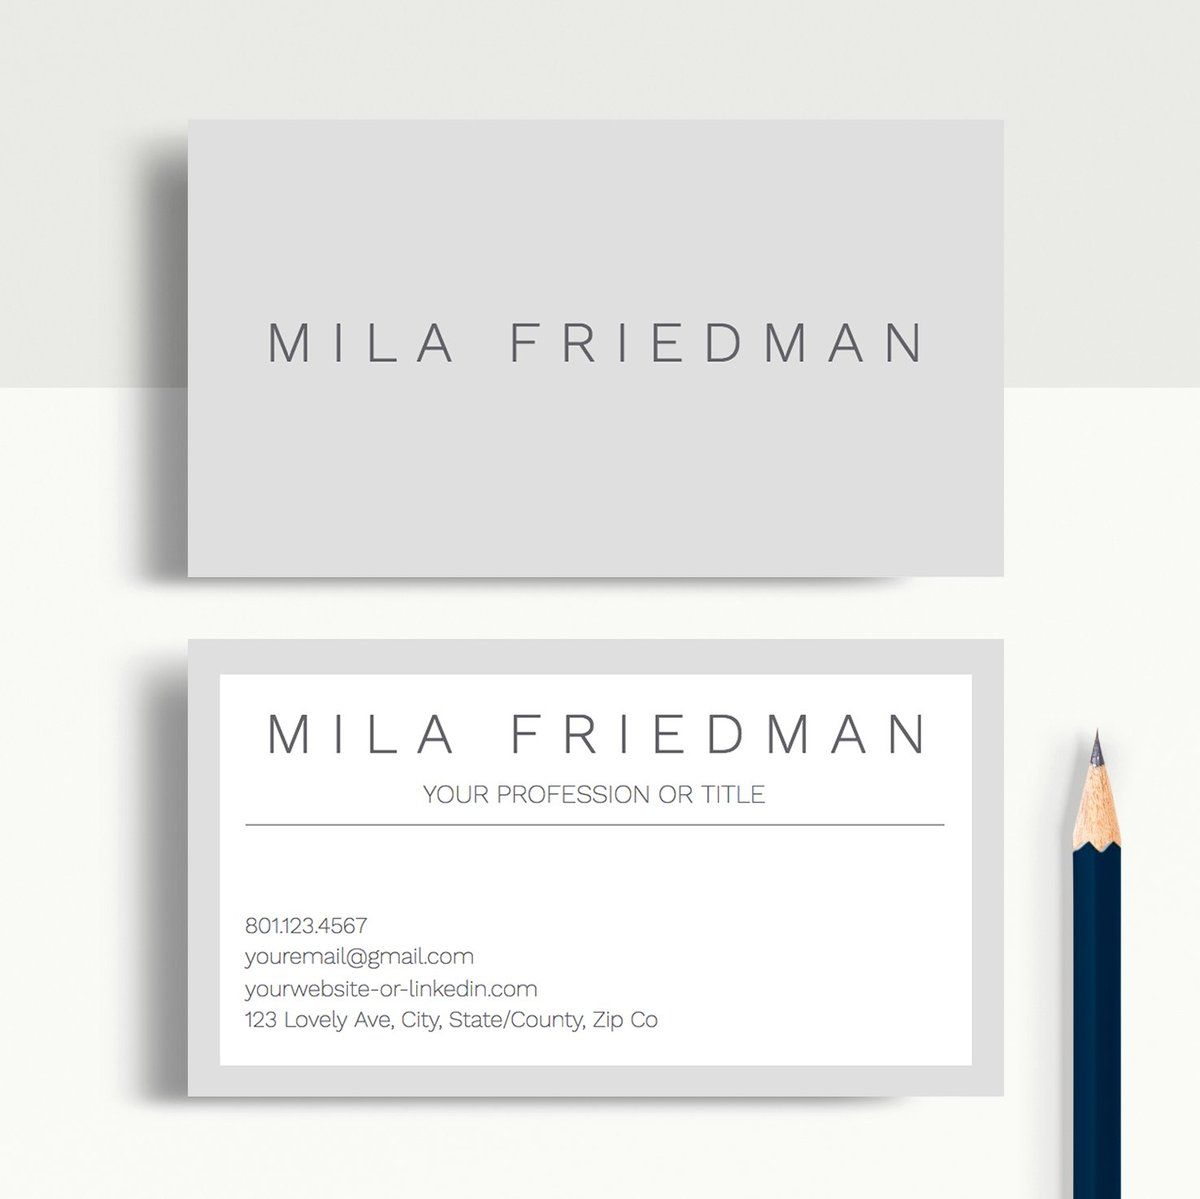 Mila Friedman Google Docs Professional Business Cards Template Professional Business Cards Professional Business Cards Templates Printable Business Cards